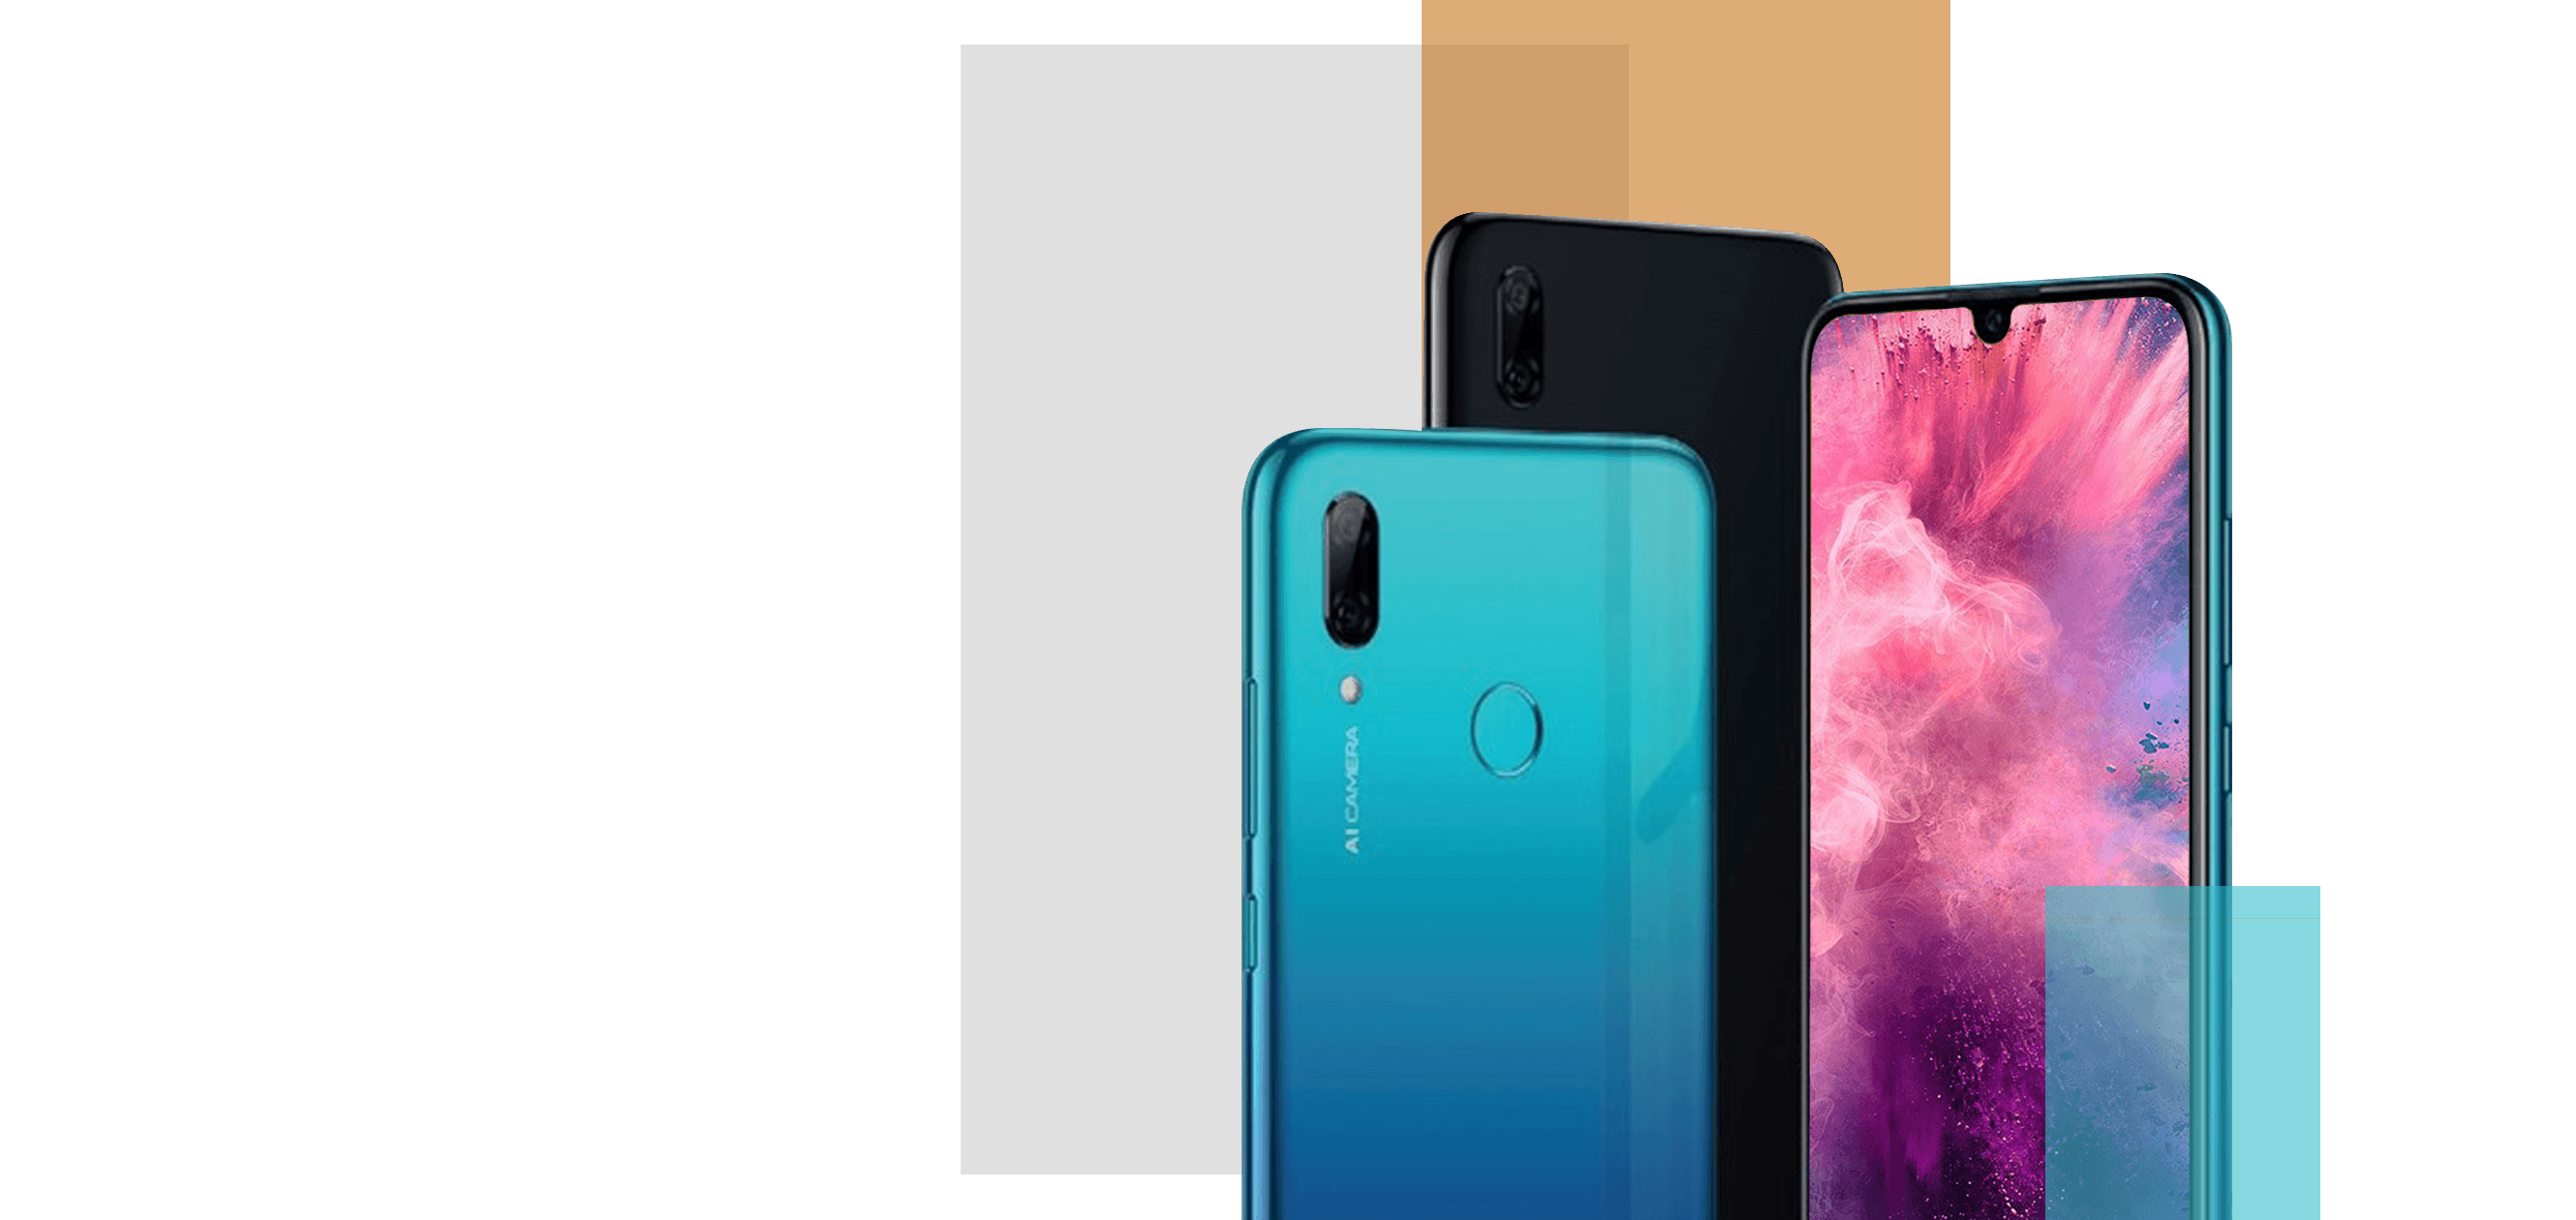 HUAWEI P Smart 2019 is already here...